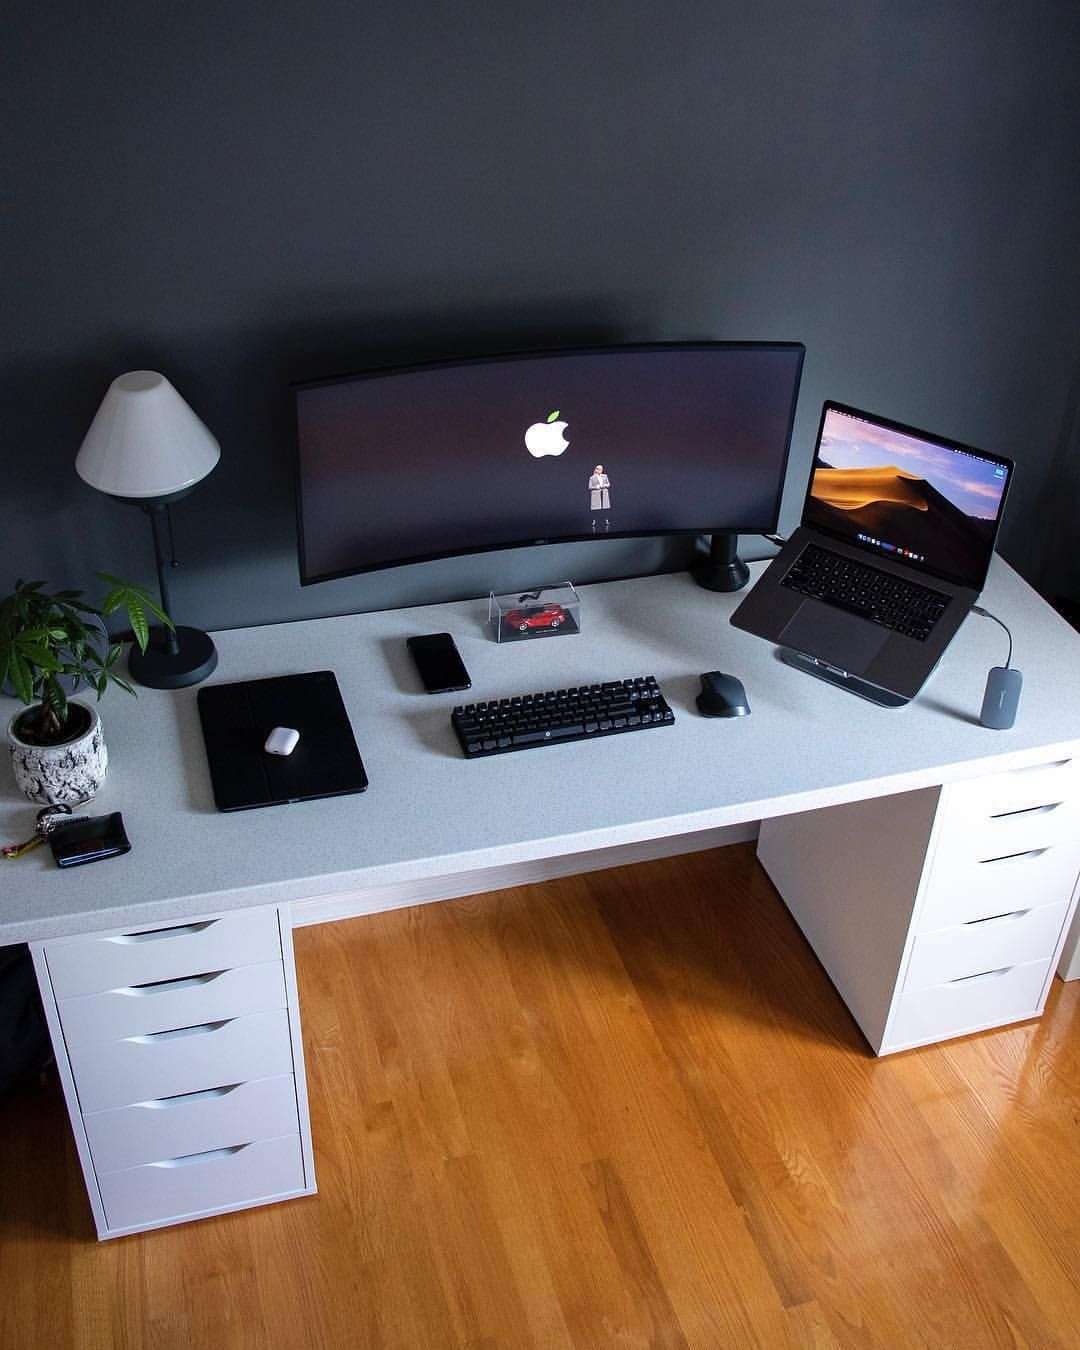 "ISetups On Instagram: ""Rate This Workspace 1-10"